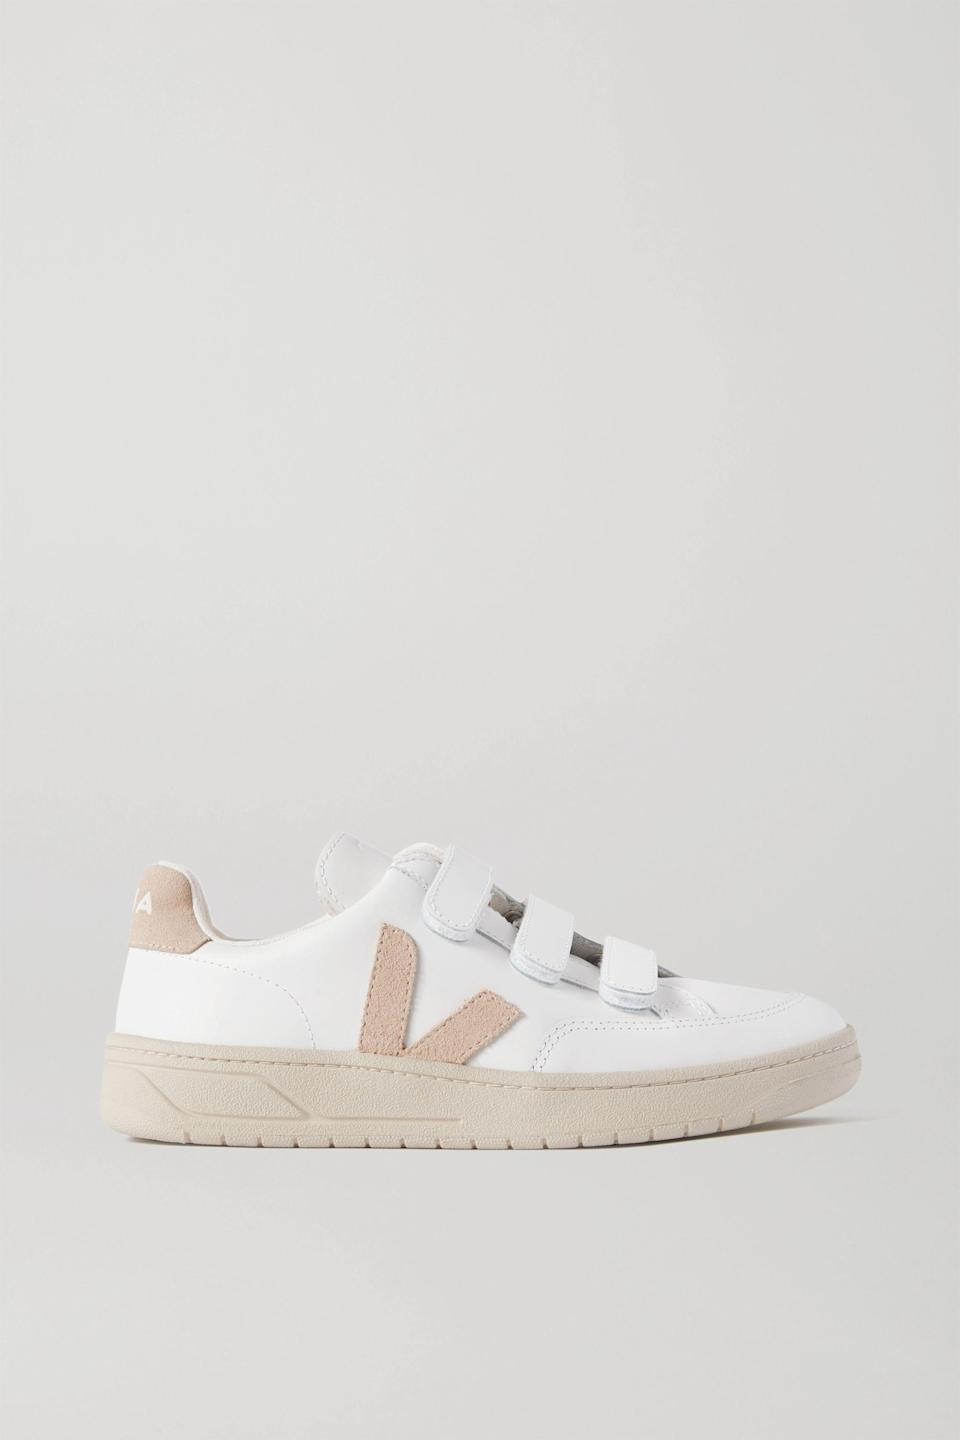 "<p><strong>Veja</strong></p><p>net-a-porter.com</p><p><strong>$84.00</strong></p><p><a href=""https://go.redirectingat.com?id=74968X1596630&url=https%3A%2F%2Fwww.net-a-porter.com%2Fen-us%2Fshop%2Fproduct%2Fveja%2Fv-lock-suede-trimmed-leather-sneakers%2F1253456&sref=https%3A%2F%2Fwww.seventeen.com%2Ffashion%2Ftrends%2Fg32826210%2Fclassic-white-sneakers%2F"" rel=""nofollow noopener"" target=""_blank"" data-ylk=""slk:Shop Now"" class=""link rapid-noclick-resp"">Shop Now</a></p><p>You're telling me these suede-trimmed leather sneakers are sustainably made <em>and</em> I don't have to tie my laces? Count me in.  </p>"